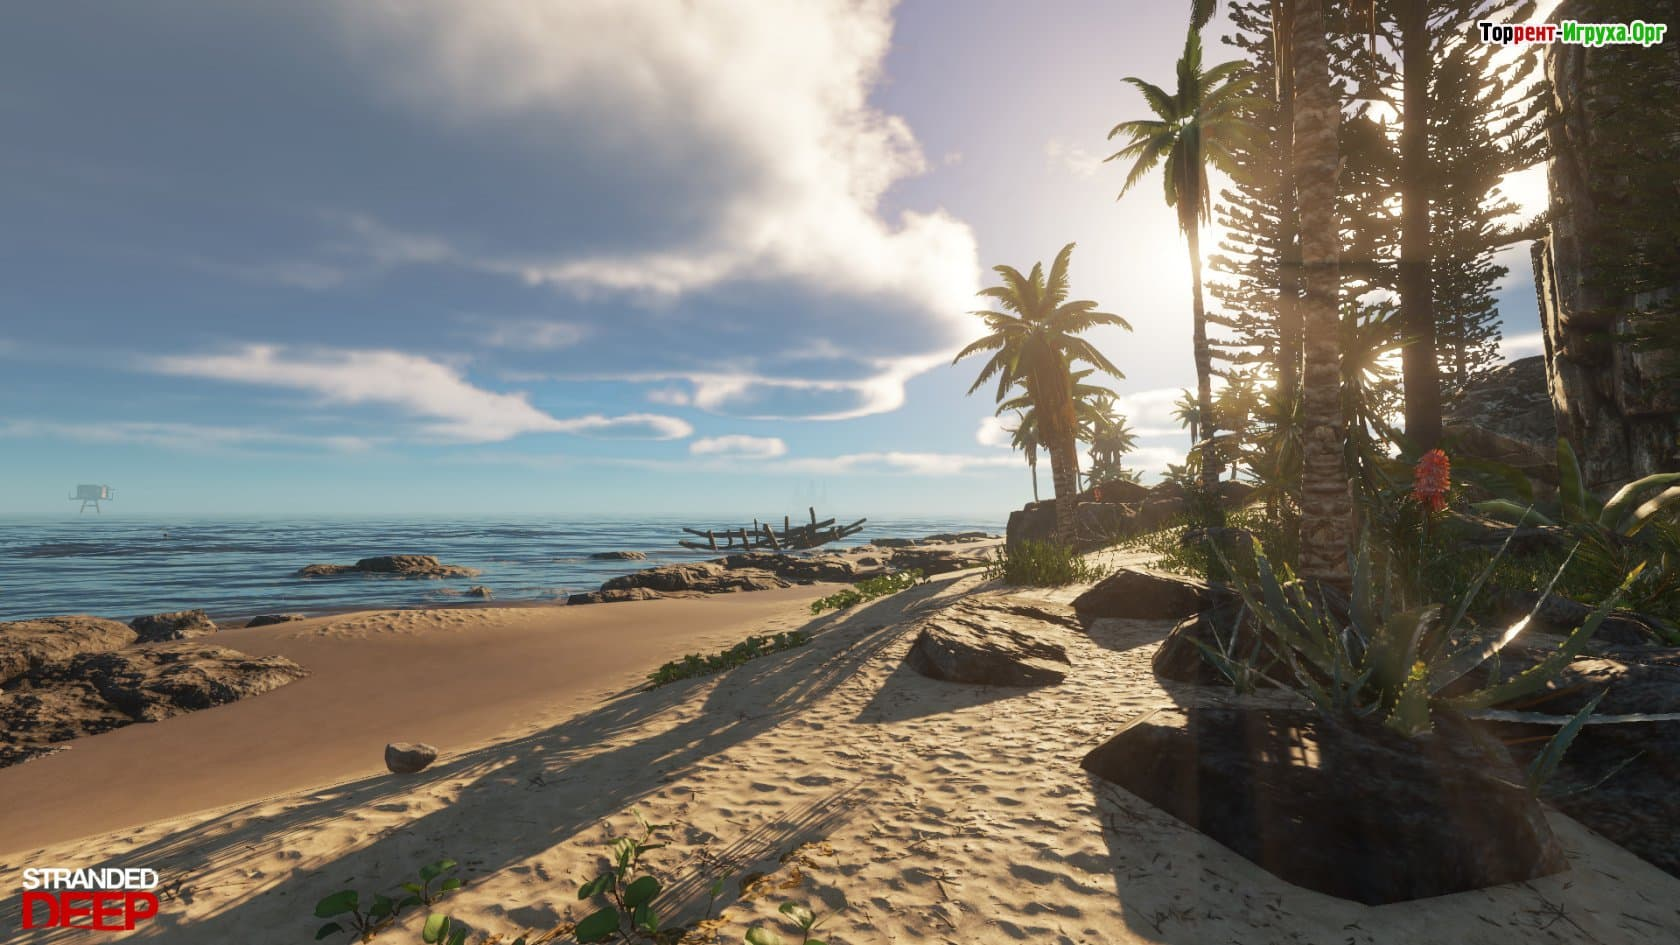 stranded deep 32 bit download 2017